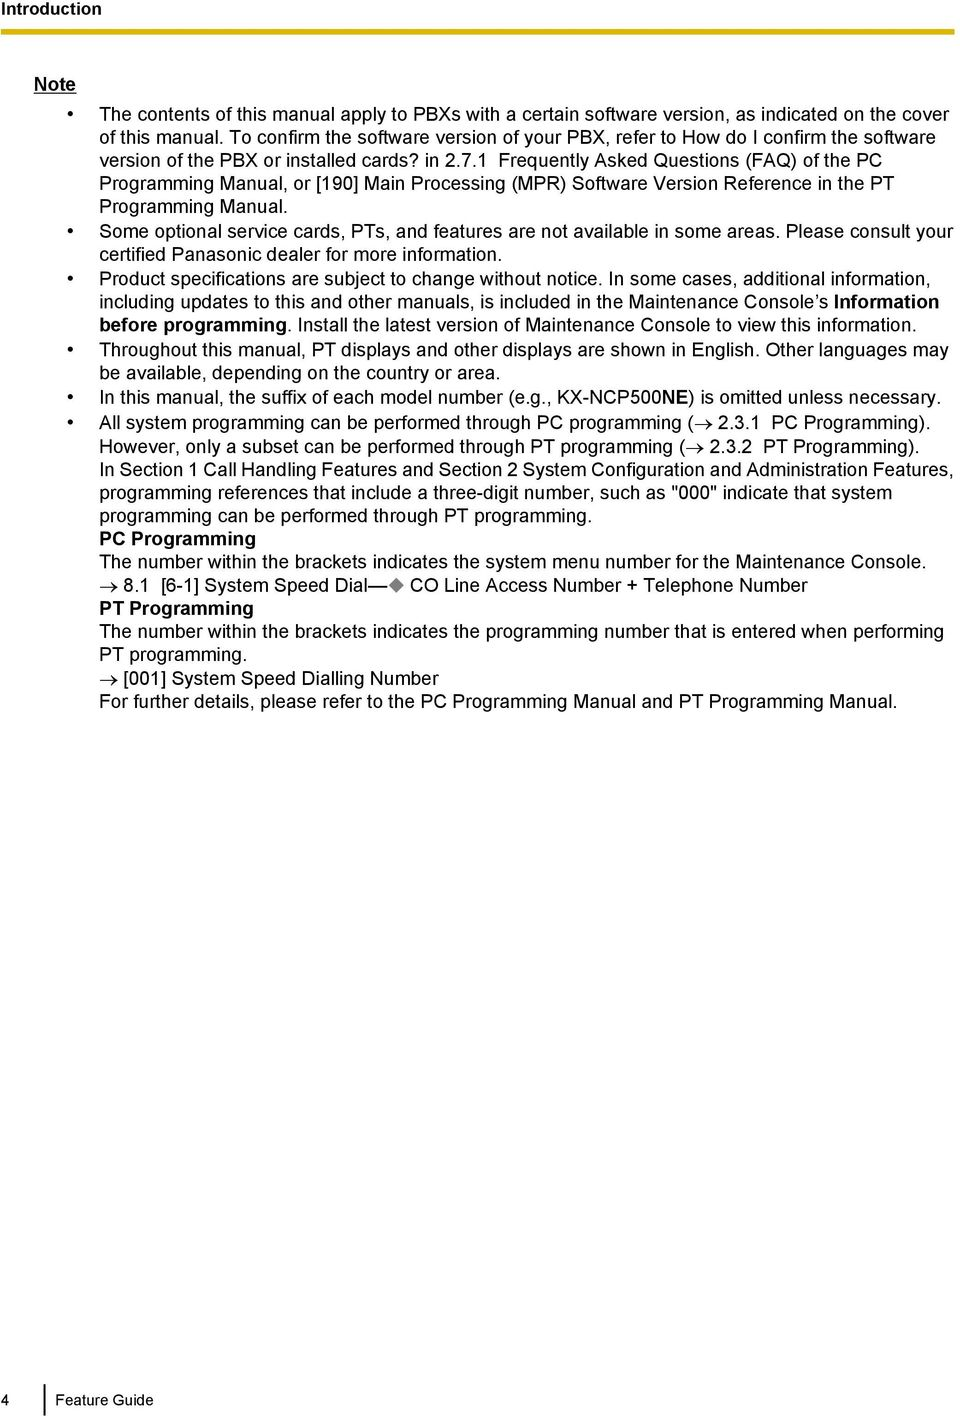 1 Frequently Asked Questions (FAQ) of the PC Programming Manual, or [190] Main Processing (MPR) Software Version Reference in the PT Programming Manual.